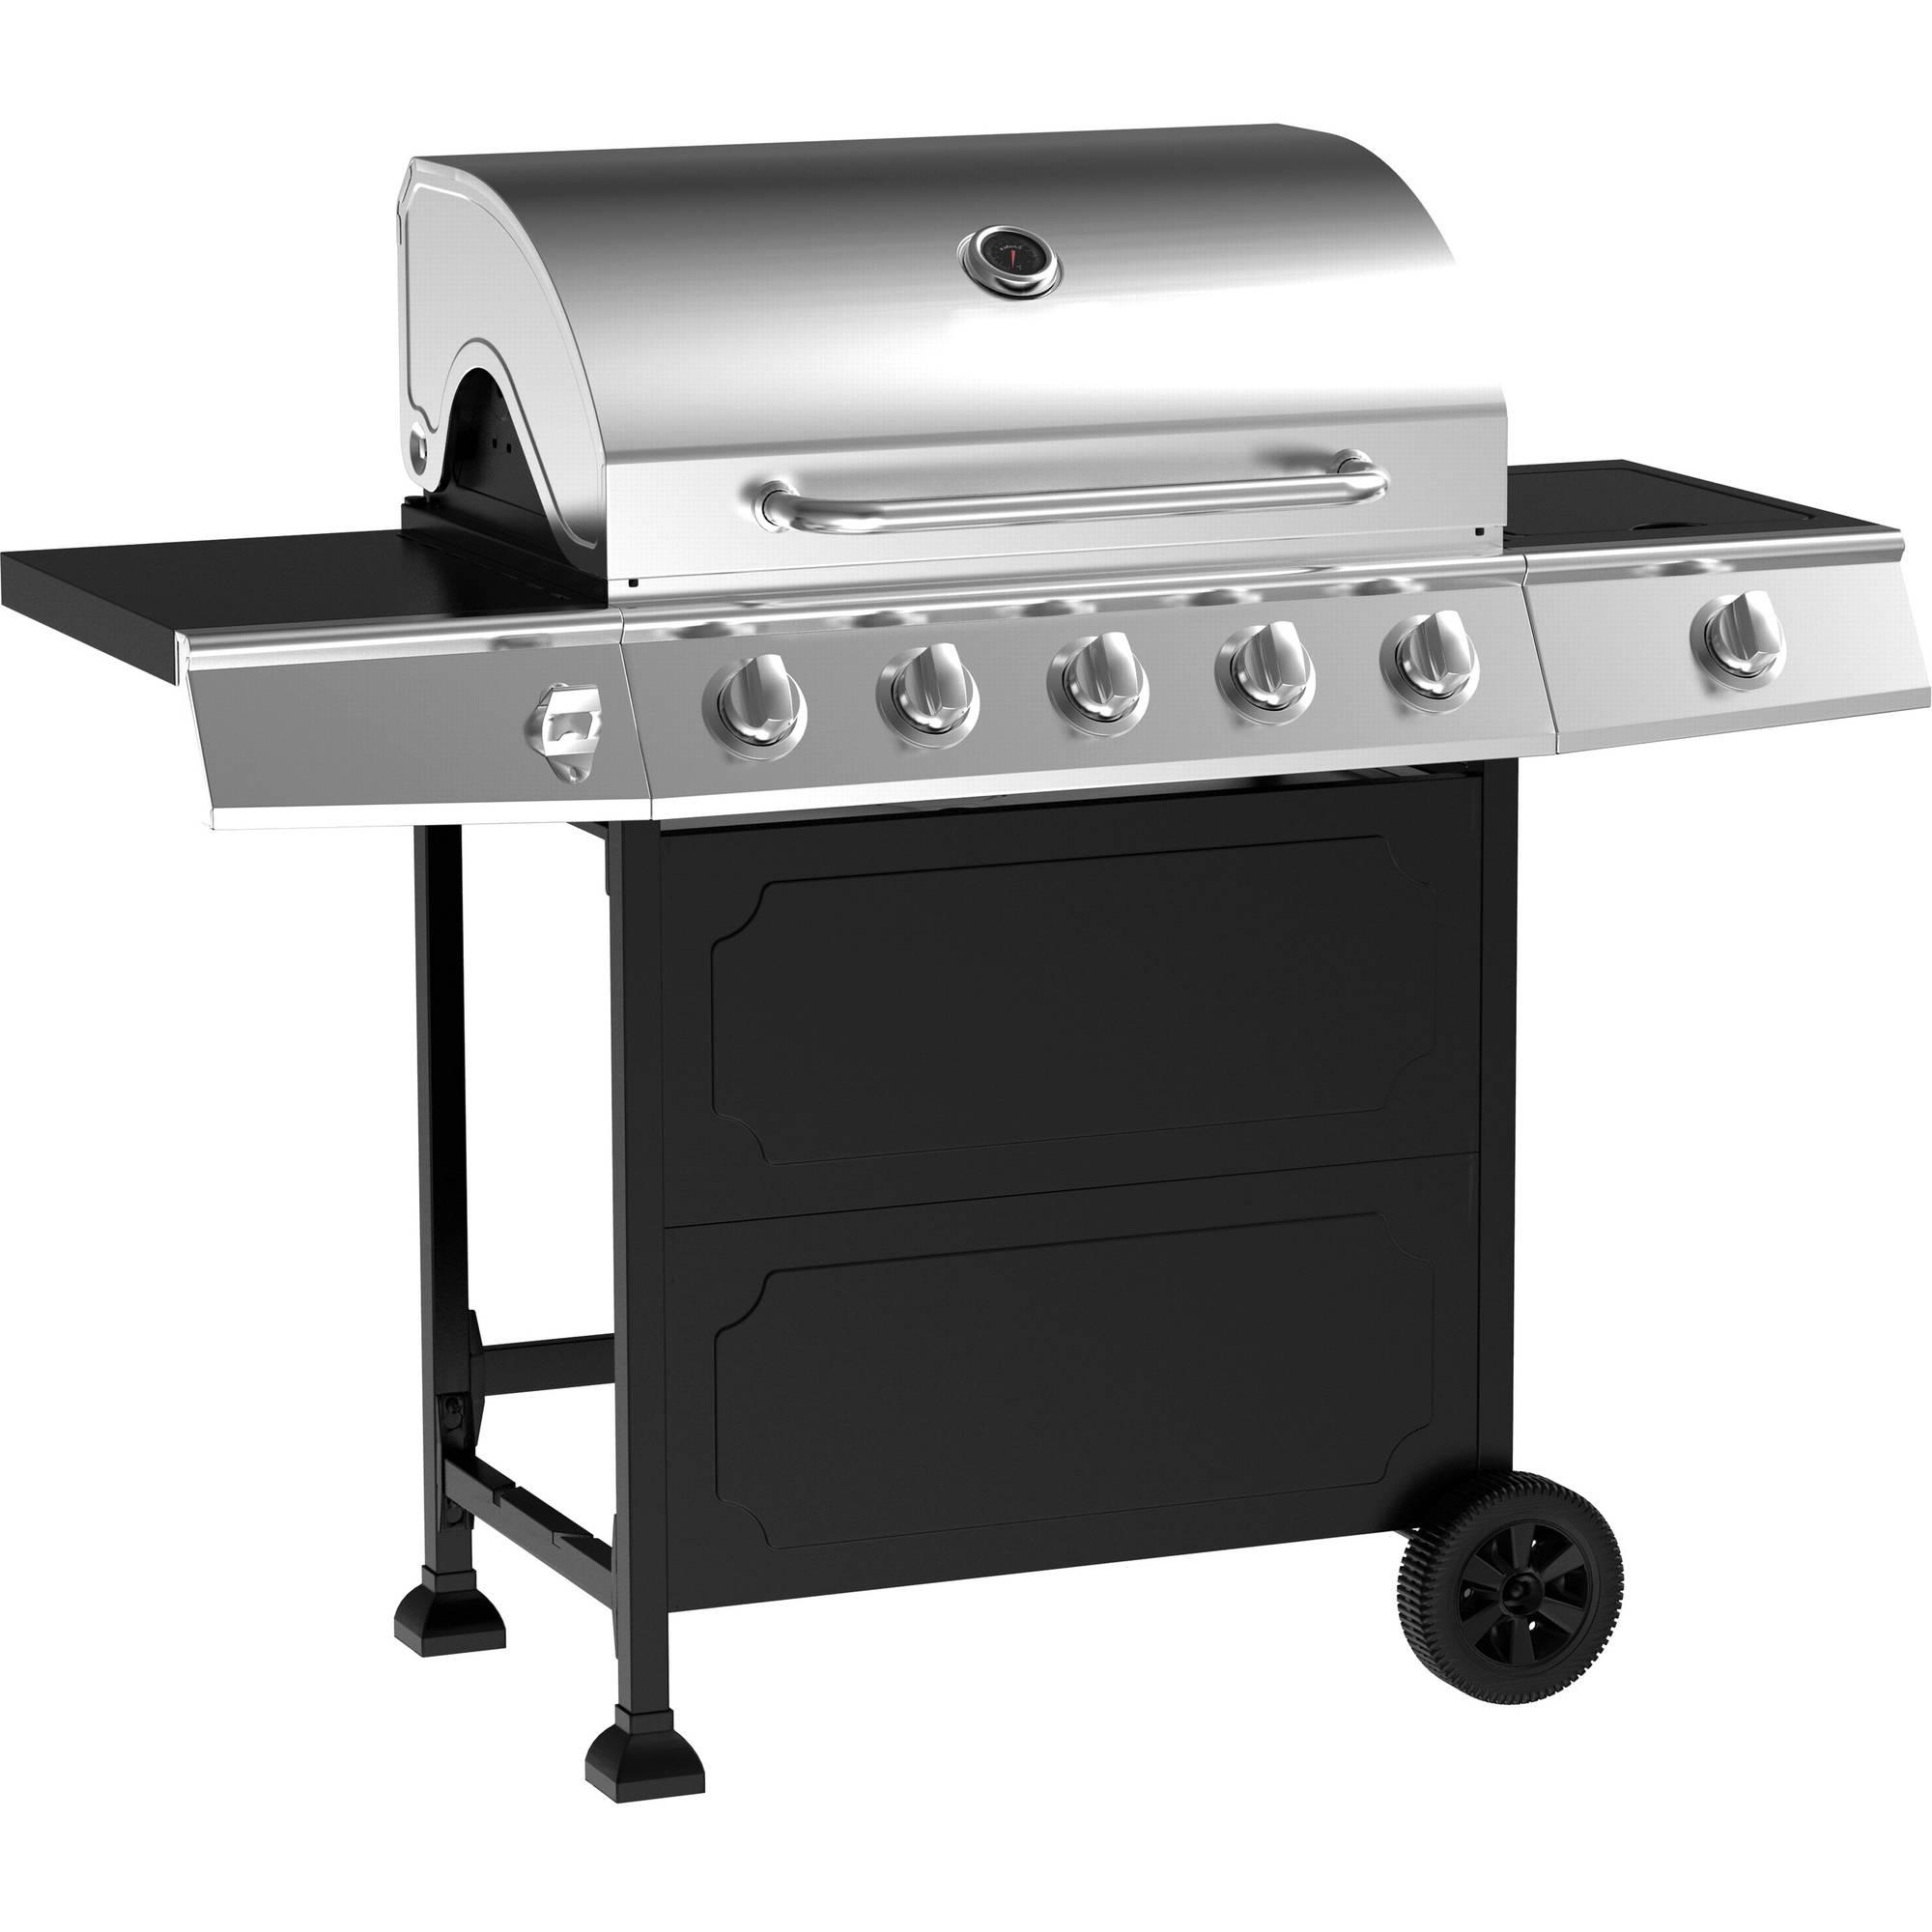 rsp pdp graphite electric heston charcoal online with bbq blumenthal grill buyeverdure ignition johnlewis everdure by fusion pedestal main at